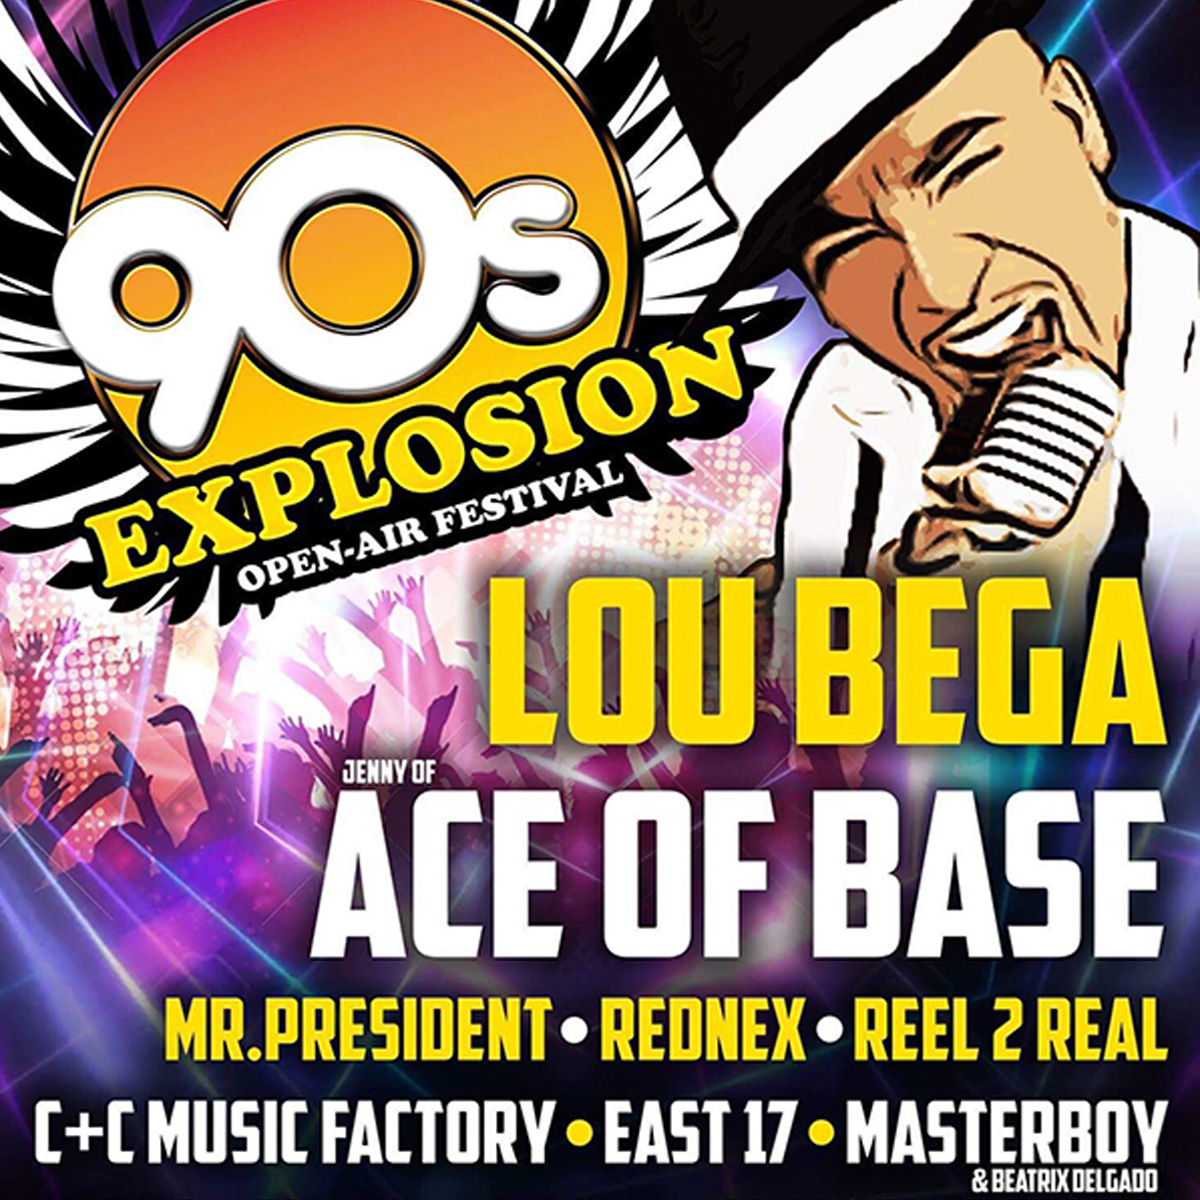 90s EXPLOSION OPEN-AIR FESTIVAL PRAGUE 2019<br>Lou Bega, Ace of Base, East 17, Snap!, Mr. President and more